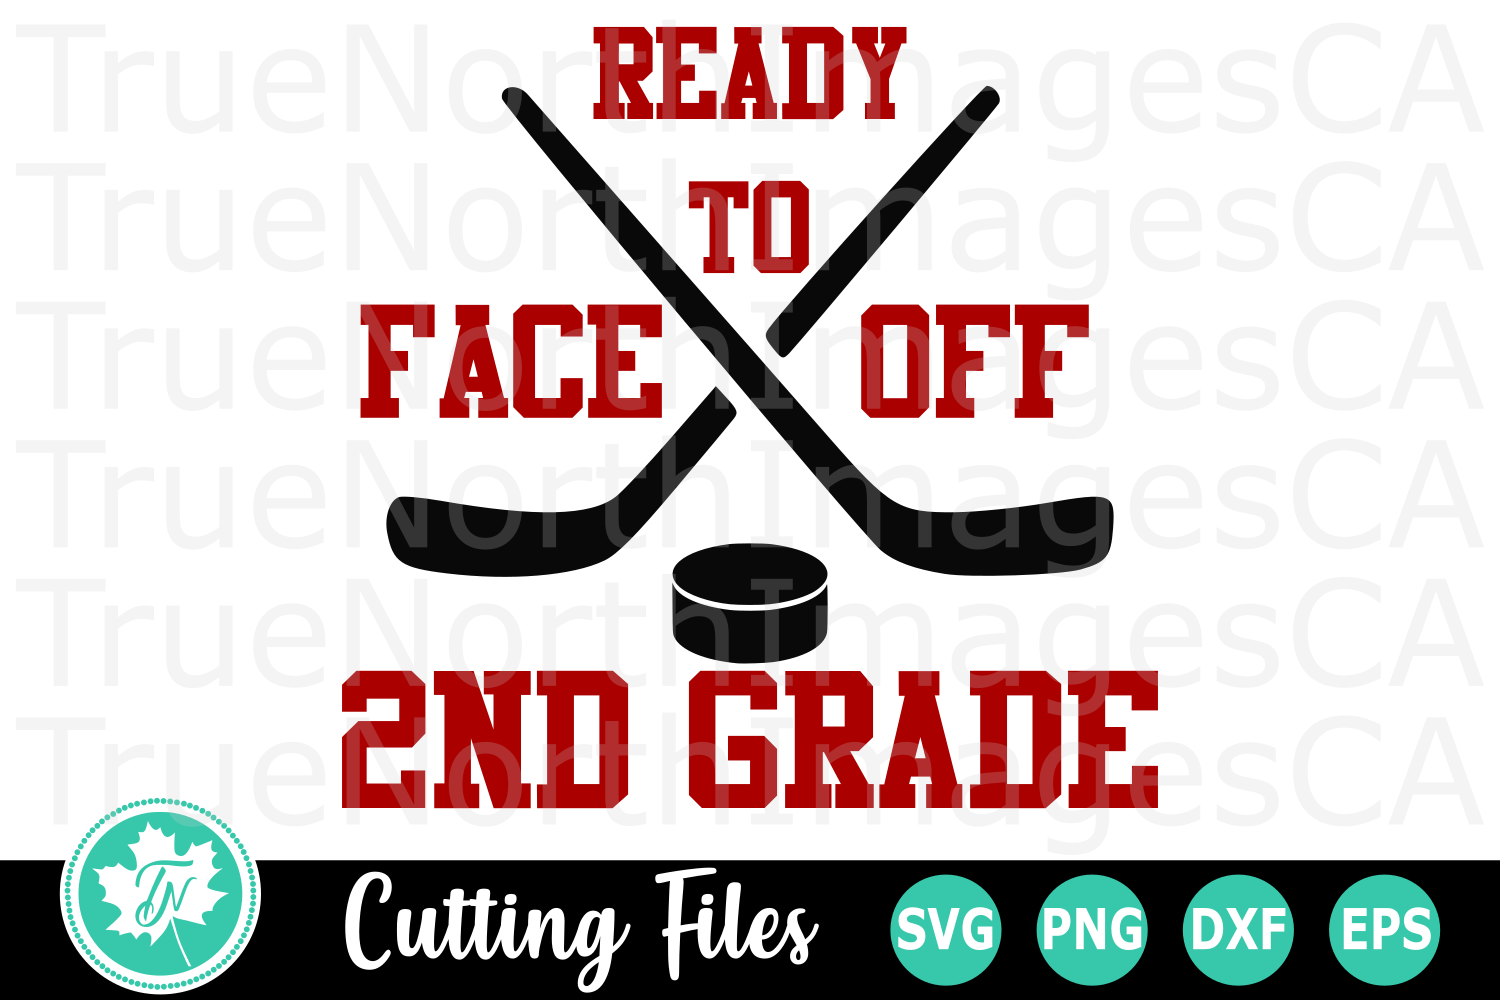 Ready to Face off 2nd Grade - A School SVG Cut File example image 1